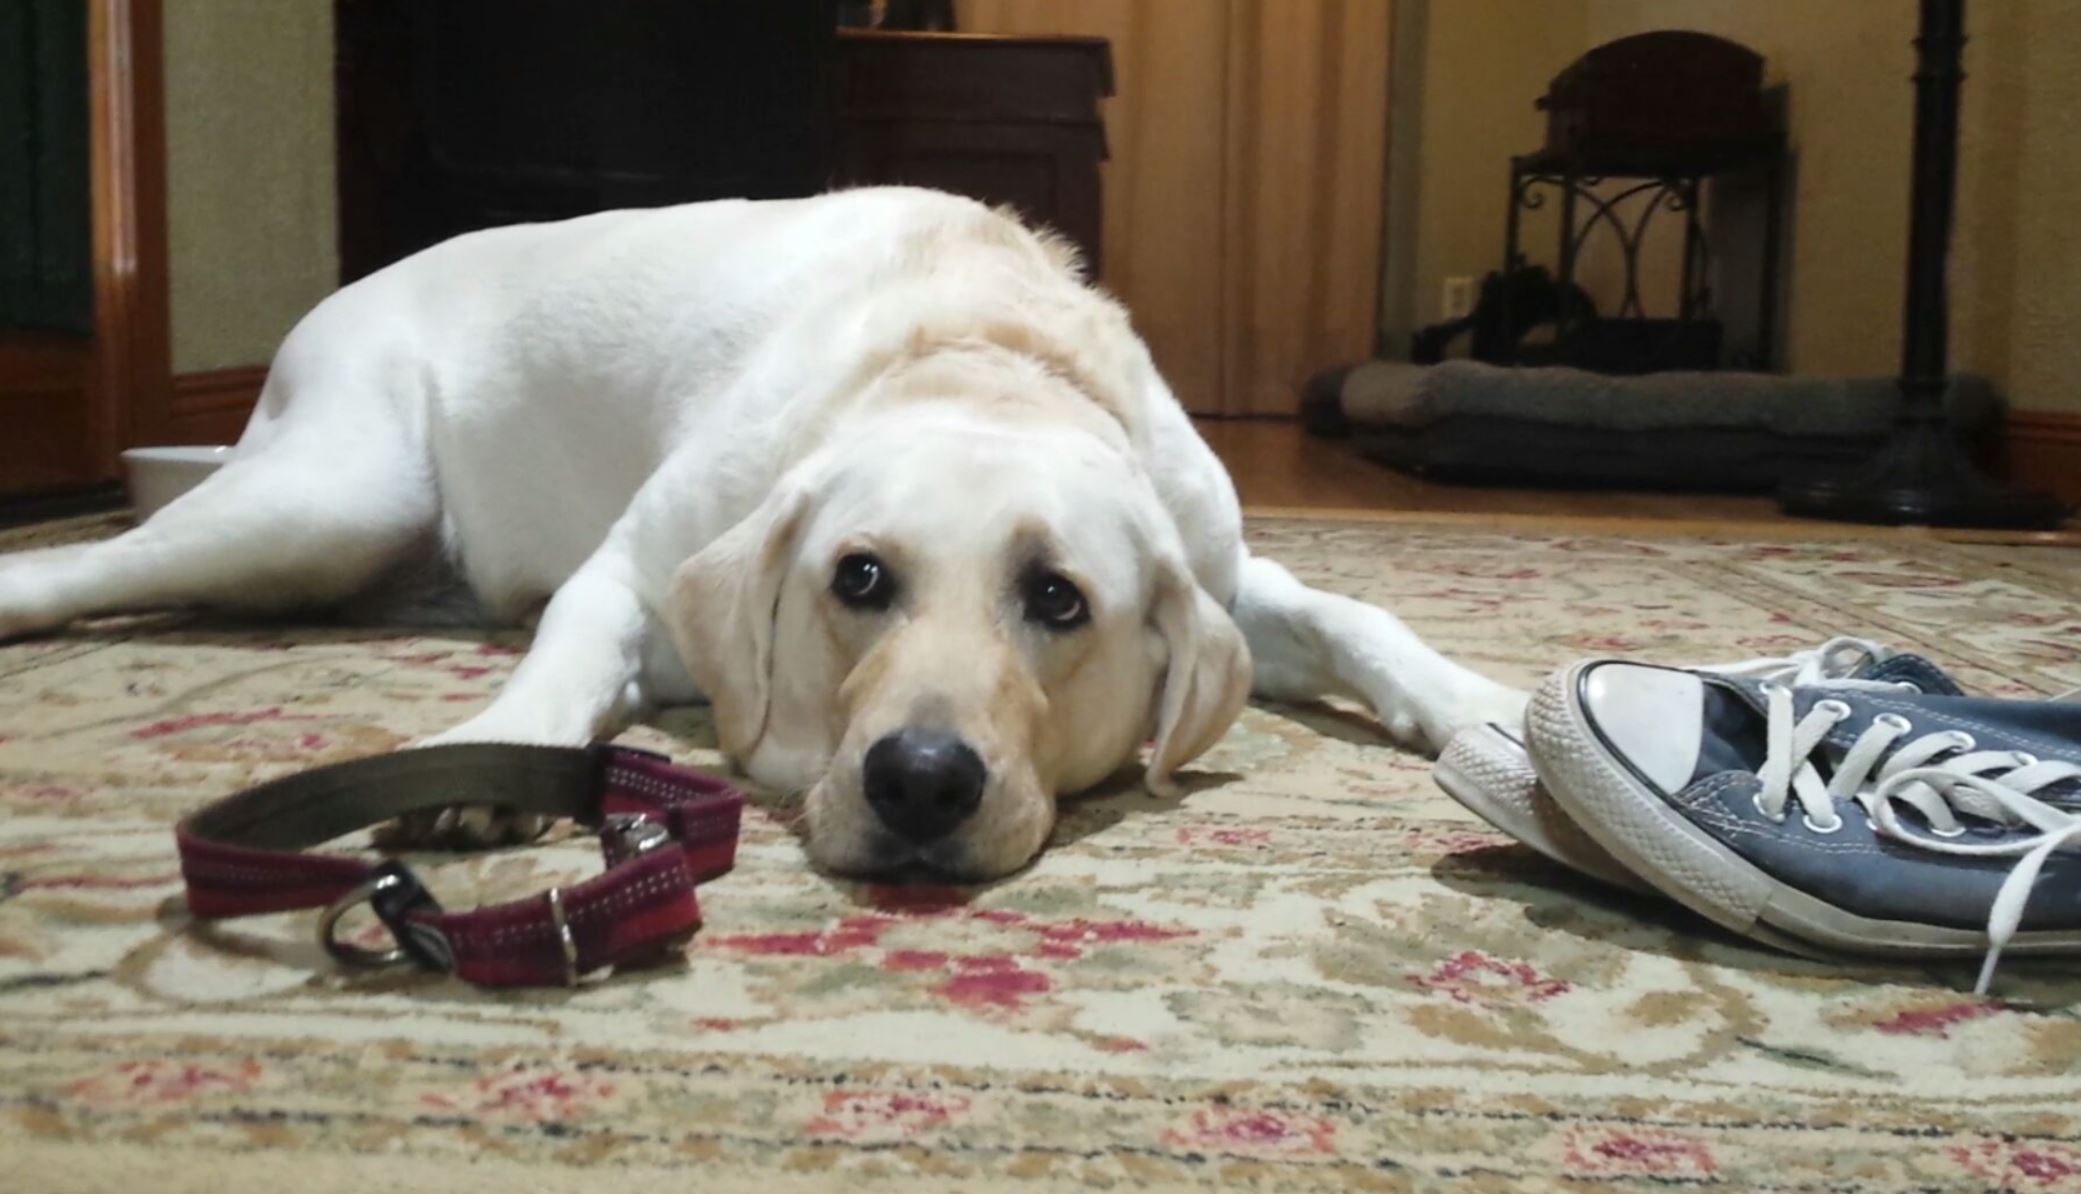 Yellow lab laying impatiently next to shoes and collar.